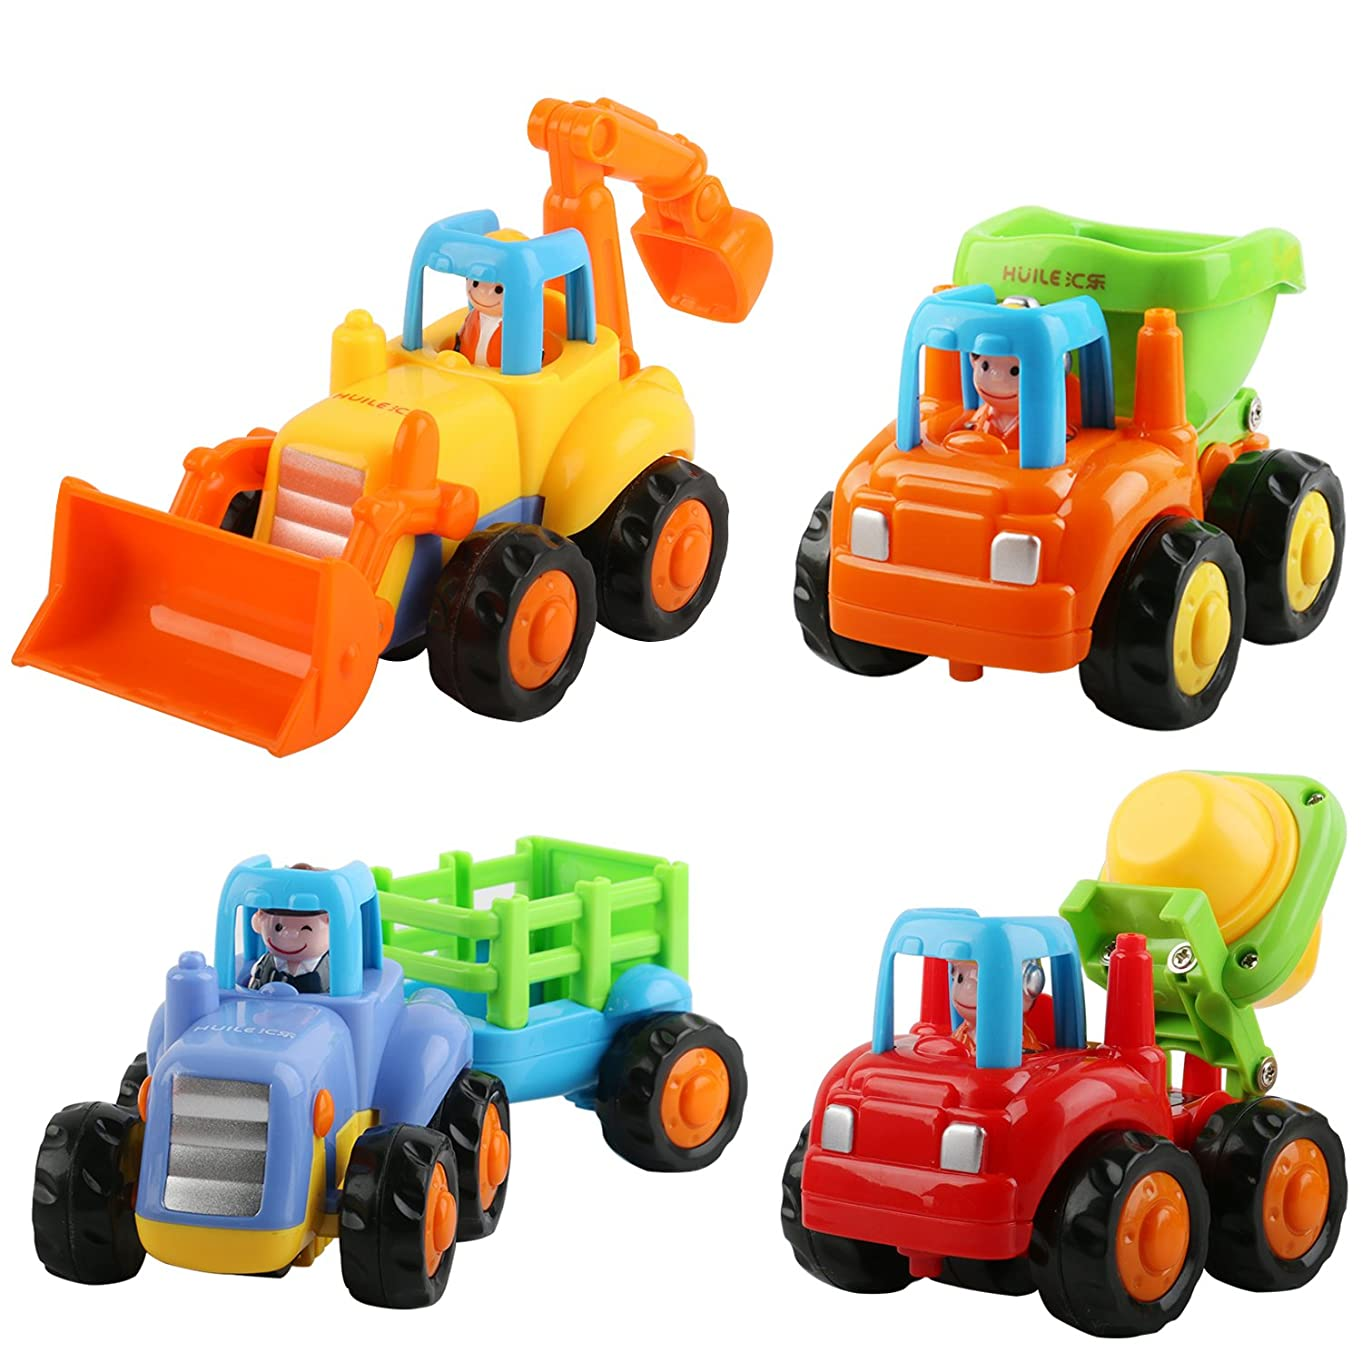 Friction Powered Car Toys, AMILE 4 PCS Push and Go Construction Vehicles Cars, Early Educational Toddler Toys for 1-3 Year Old Kids